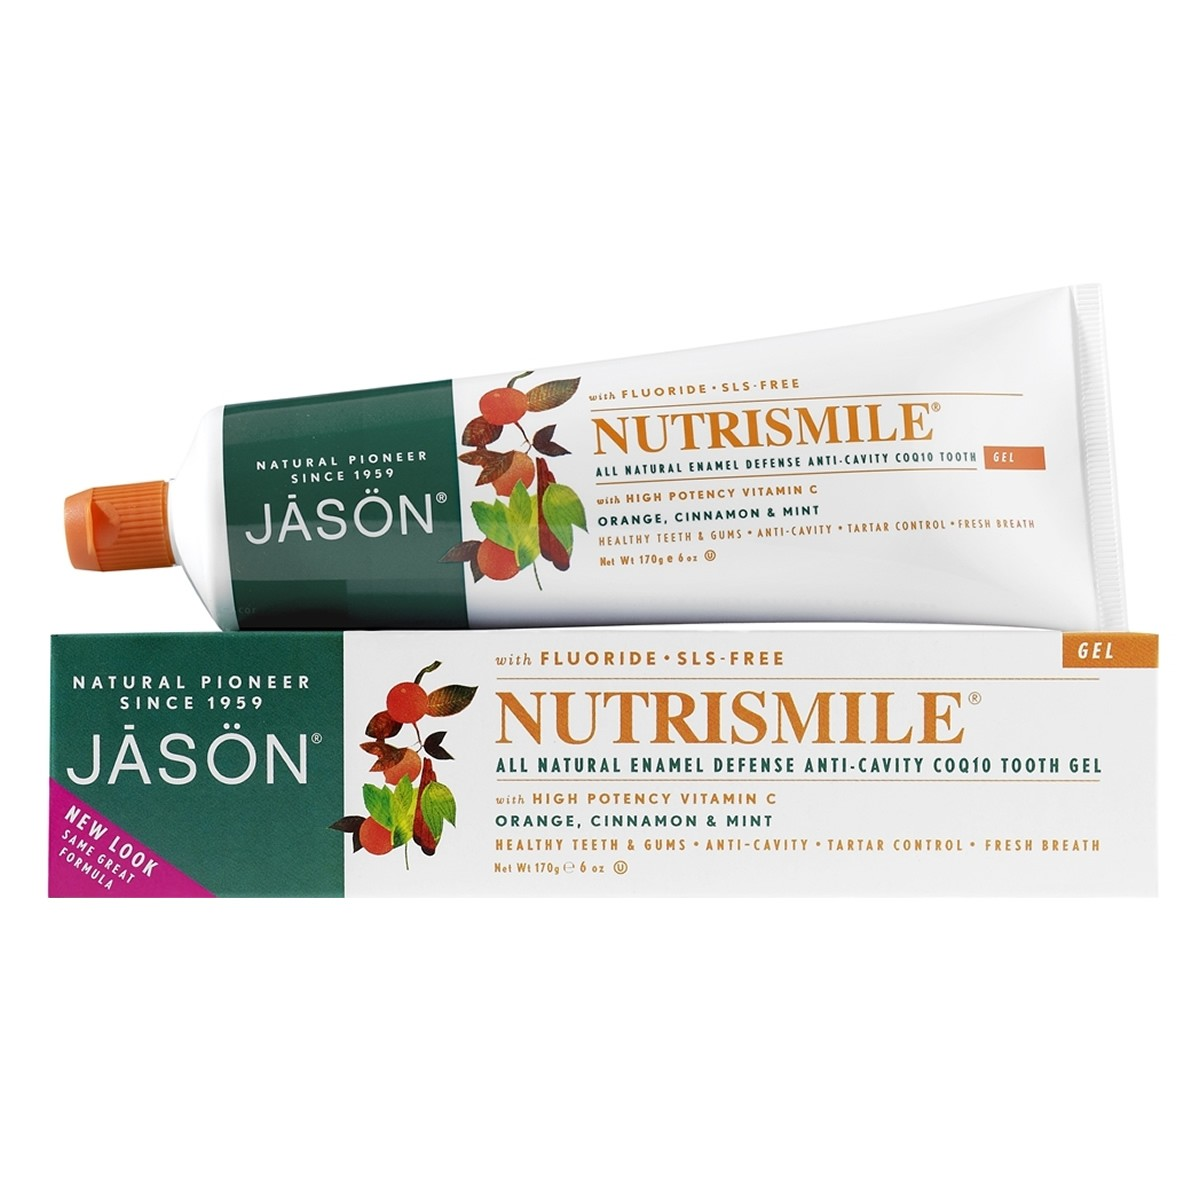 Jason Nutrismile Enamel Defense Anti-Cavity Tooth Gel (With Fluoride)